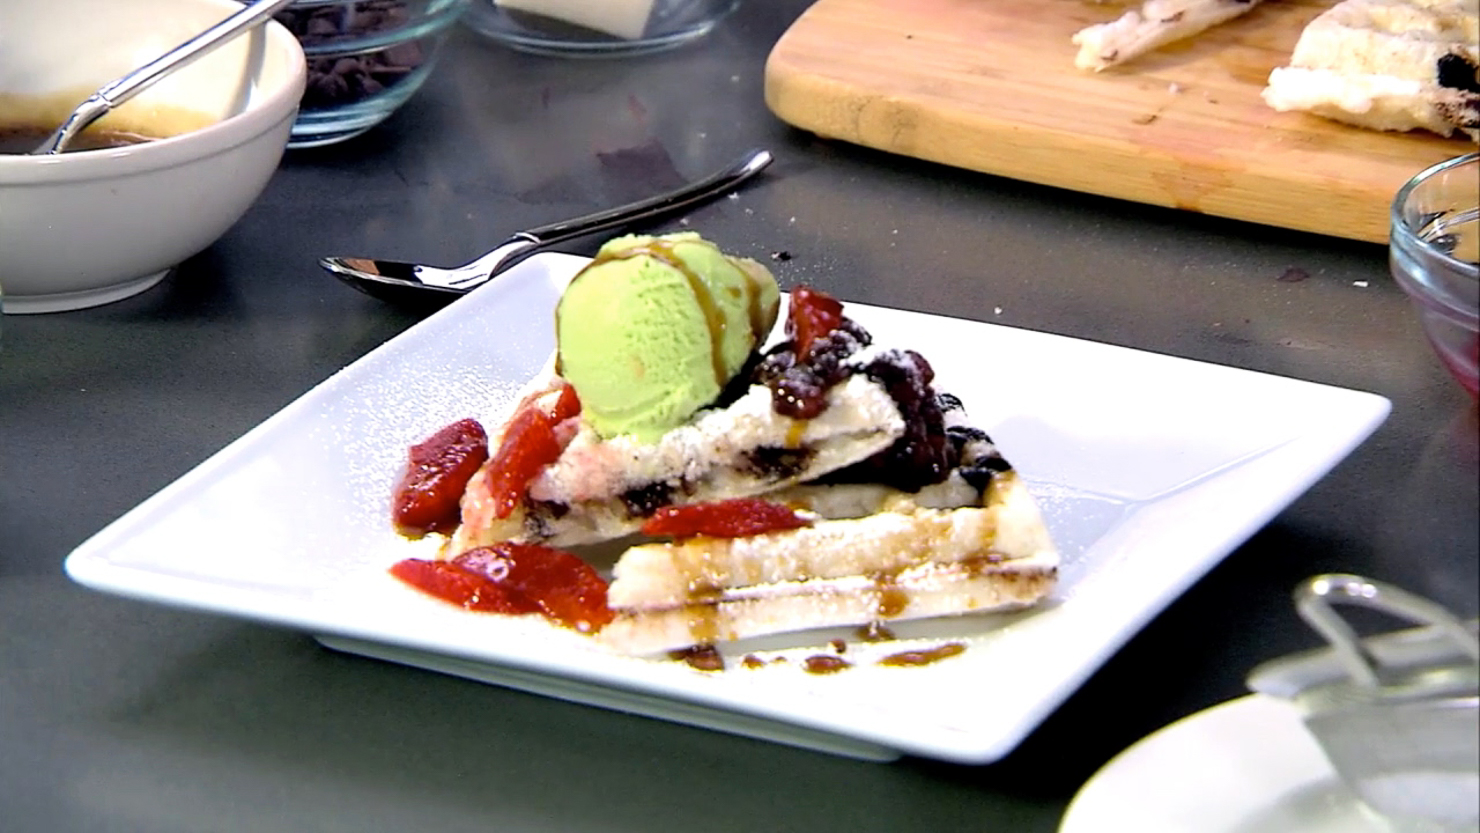 Chef Takashi Yagihashi, Mochi Chocolate Chip Waffle with Sweet Red Beans, Green Tea Ice Cream, and Blood Orange